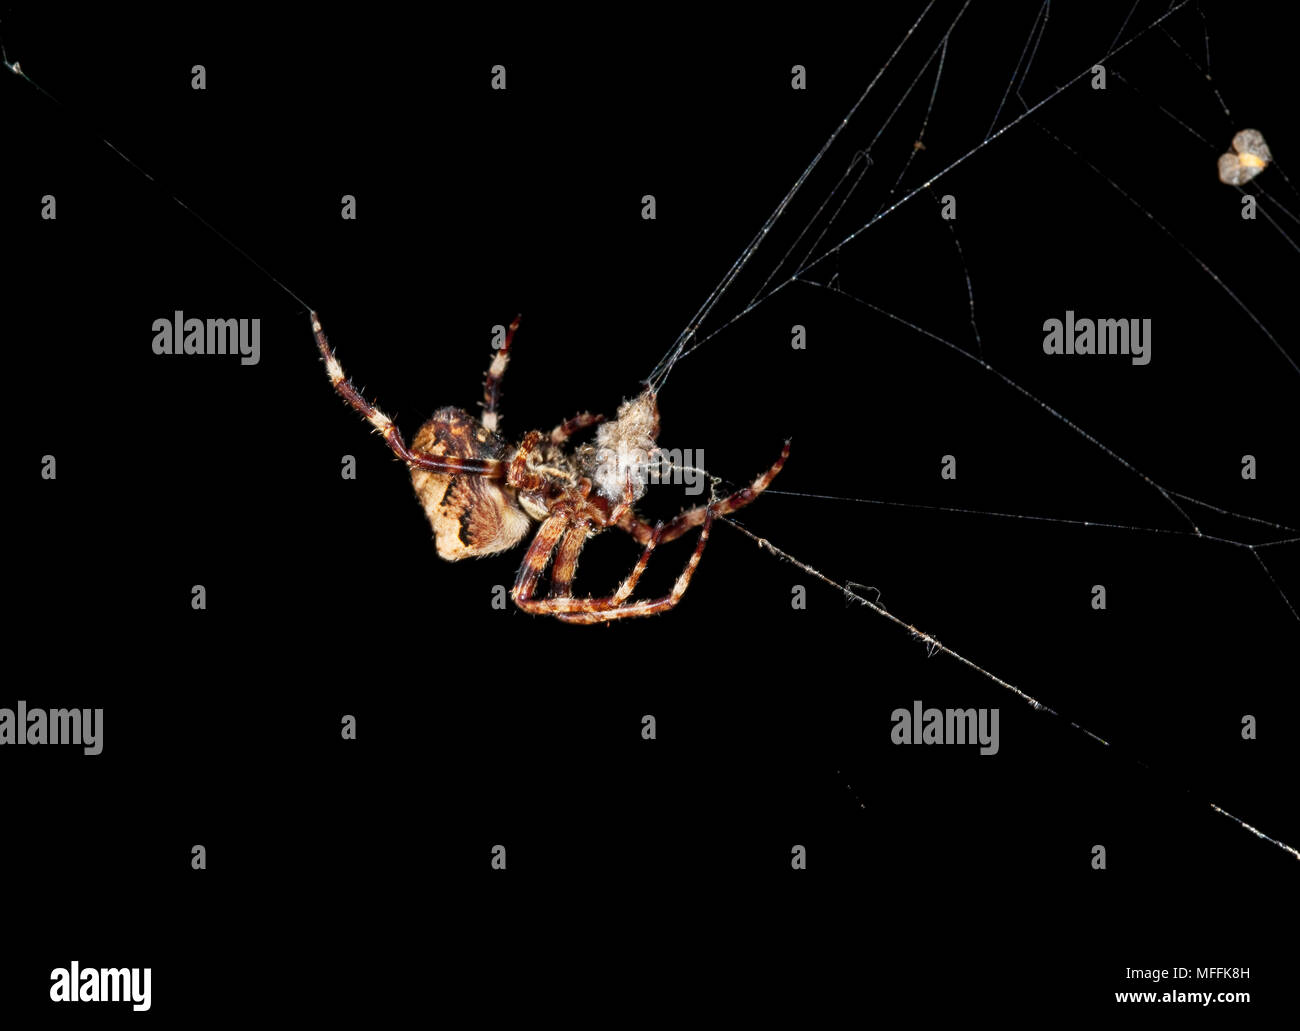 ORB WEAVER SPIDER (Araneus angulatus) A large and rare orb-weaving spider that builds webs of sometimes over 4 feet long - Stock Image